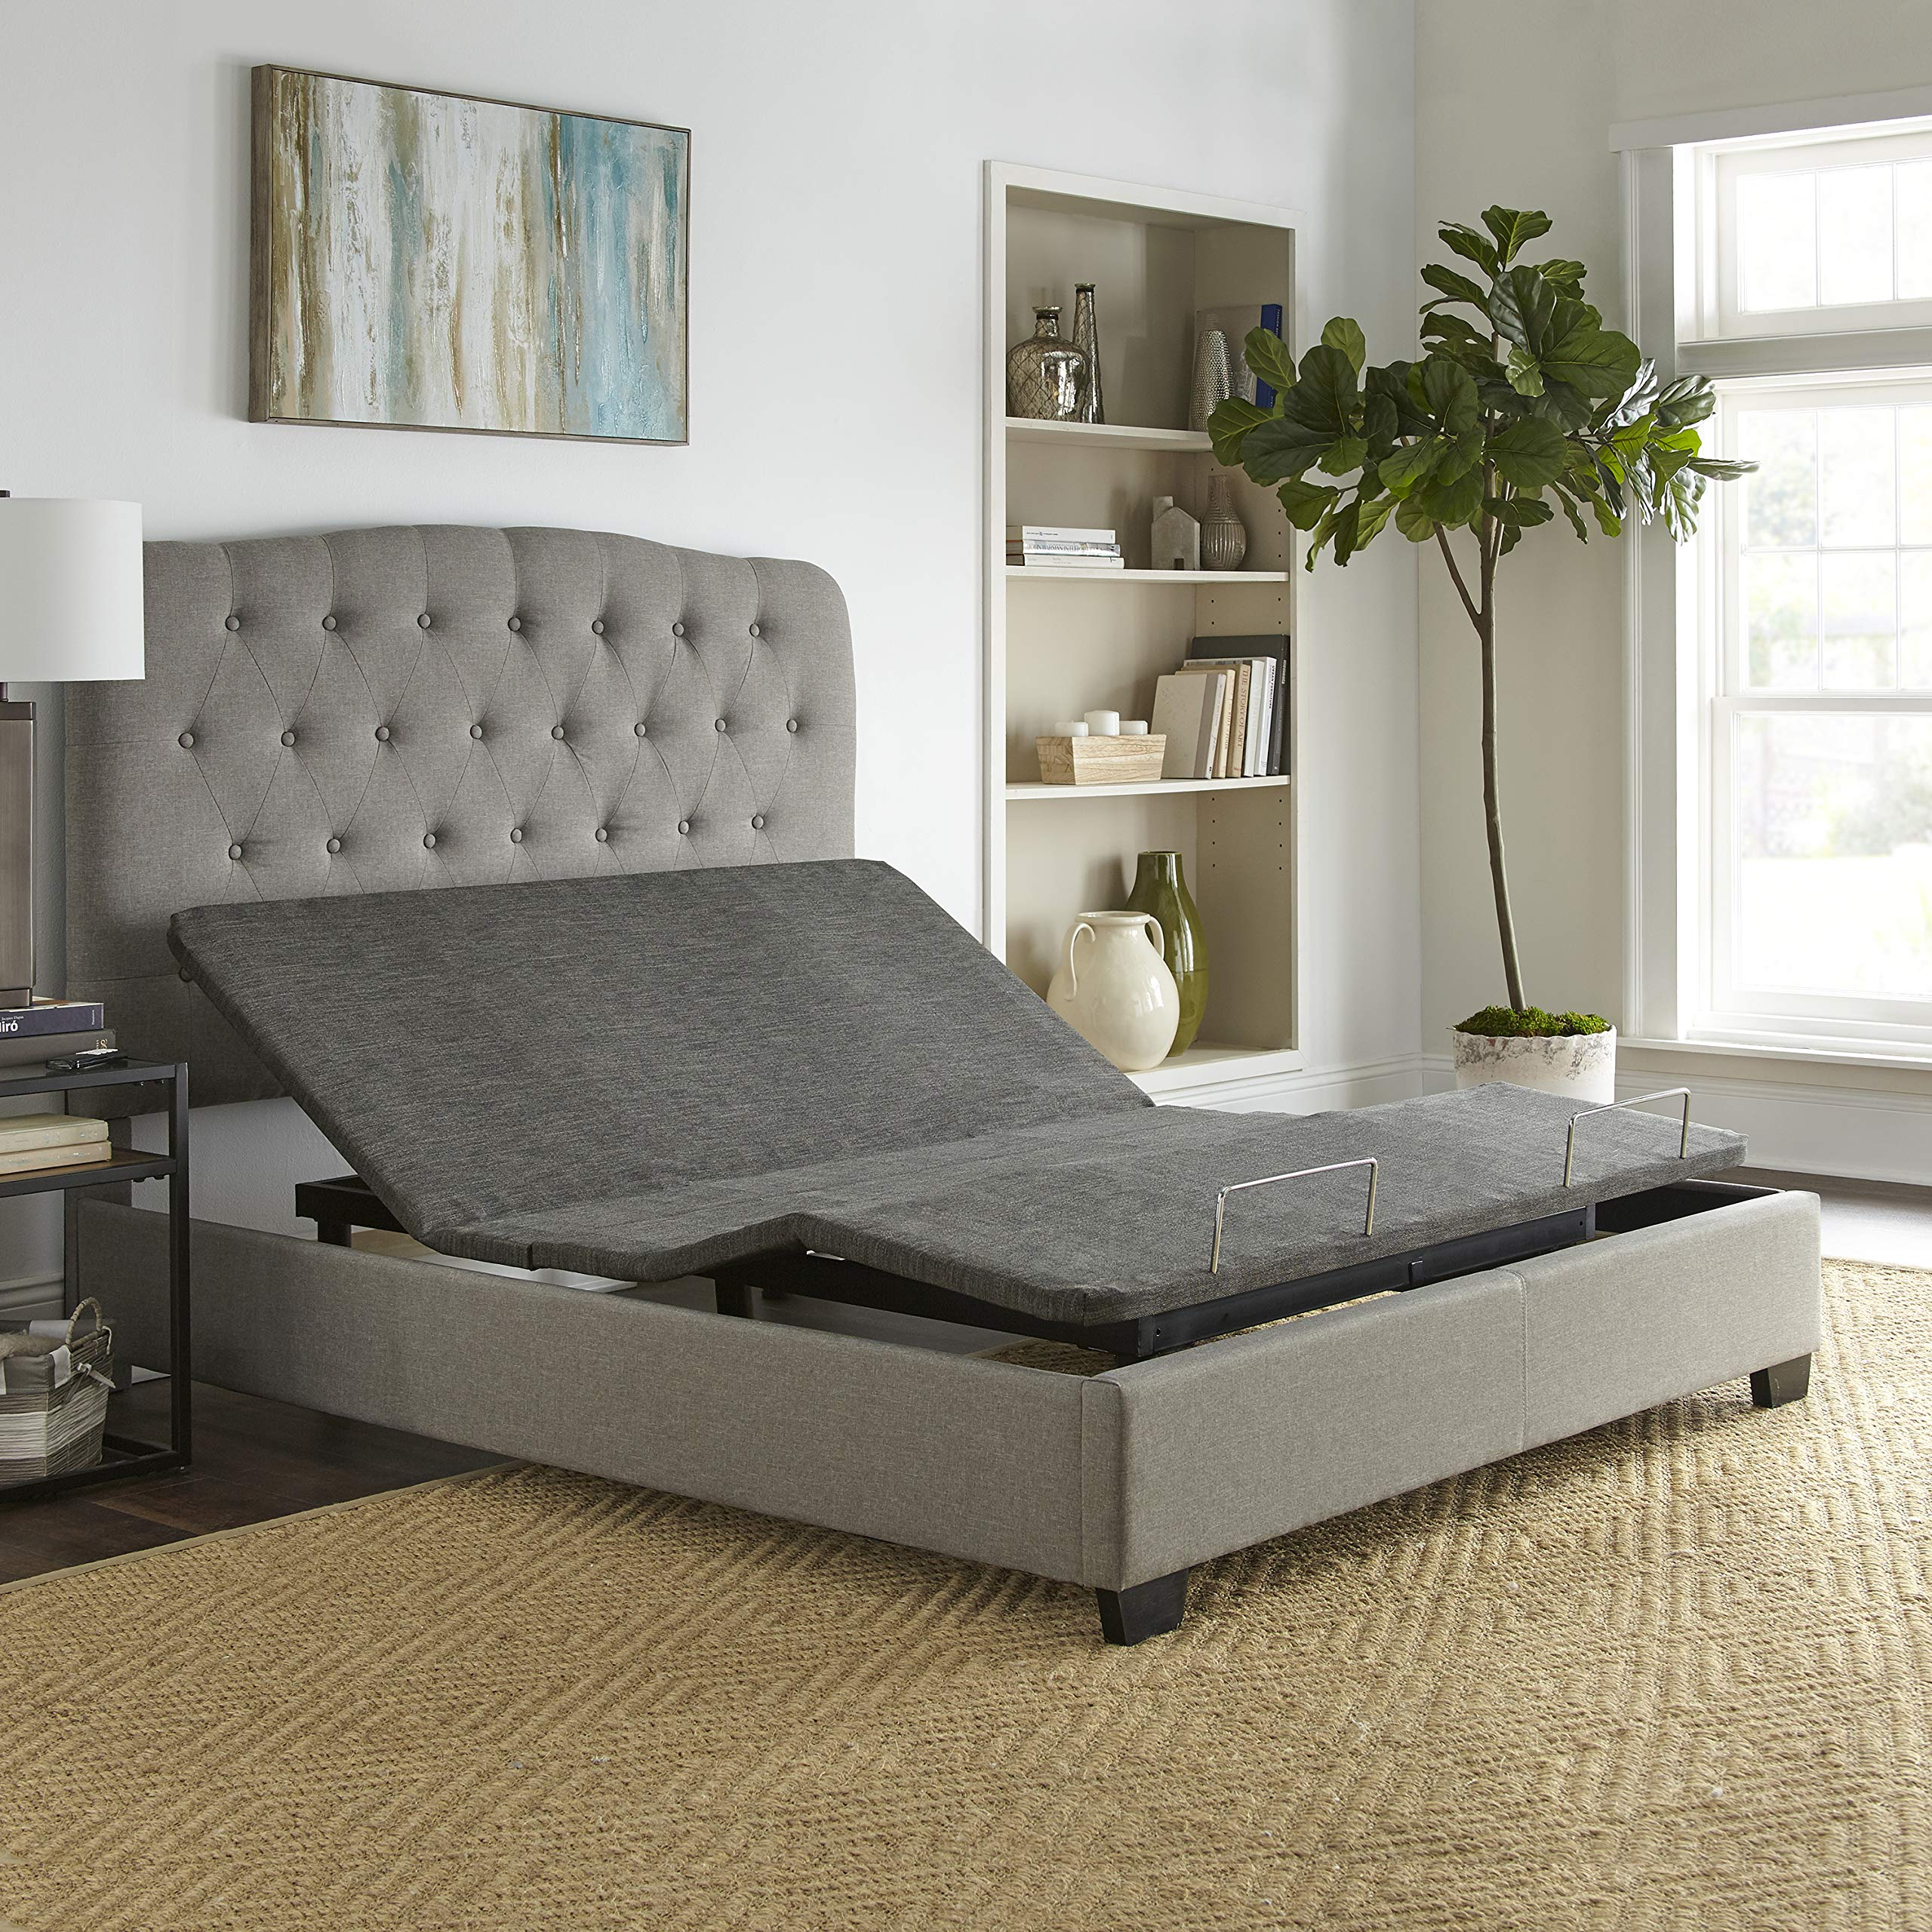 Boyd Sleep Zero Clearance Upholstered Adjustable Bed Base Foundation with Wireless Remote, Queen by Boyd Sleep